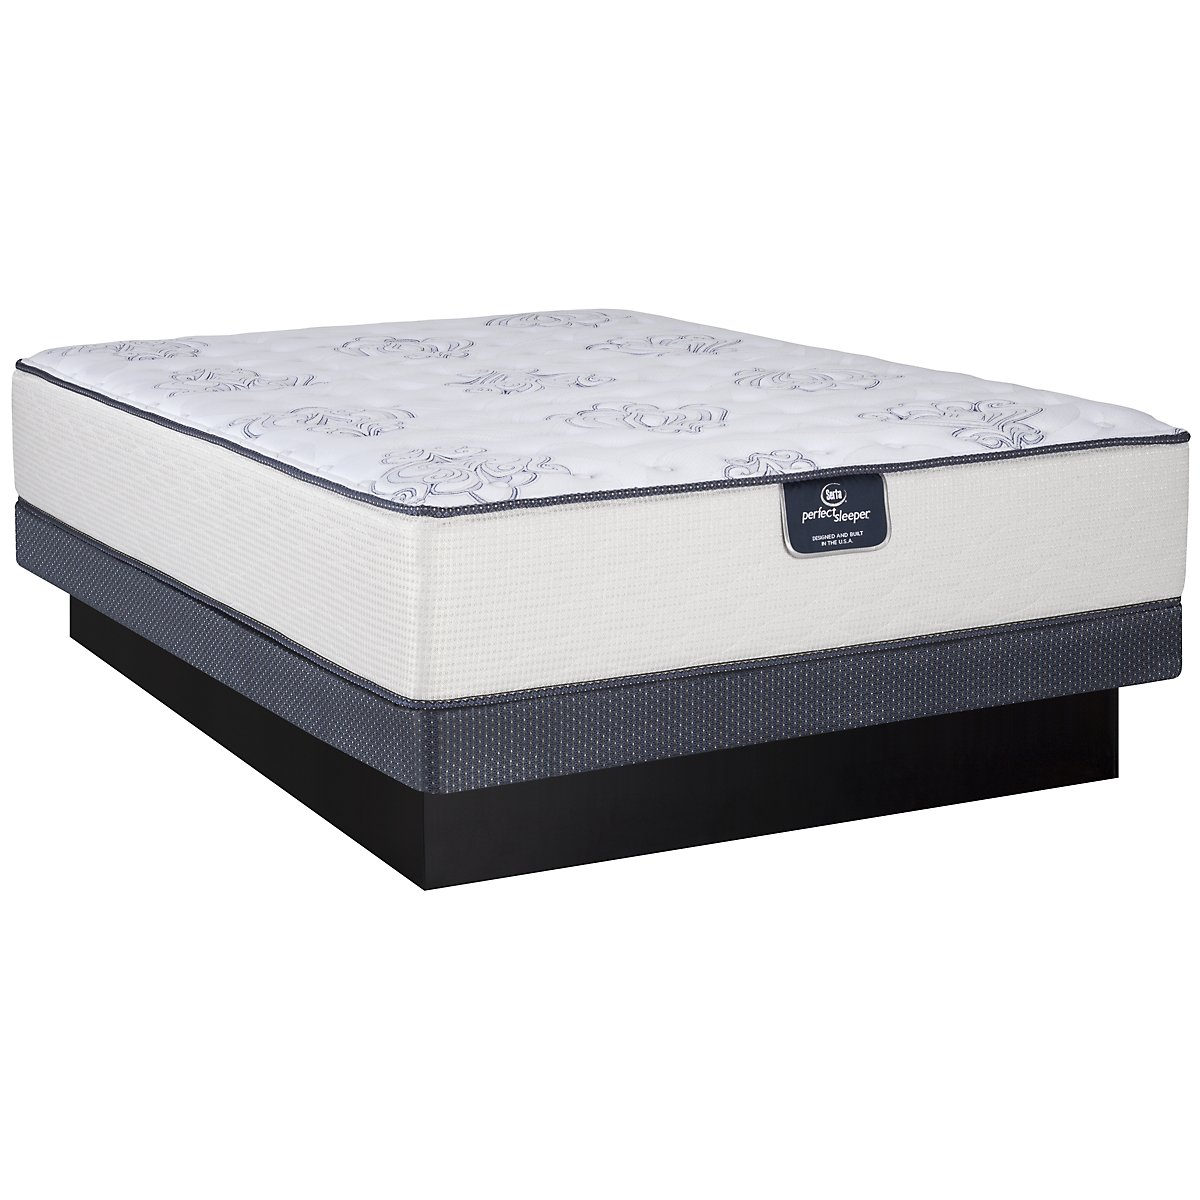 Serta Perfect Sleeper Belltower Firm Innerspring Low-Profile Mattress Set